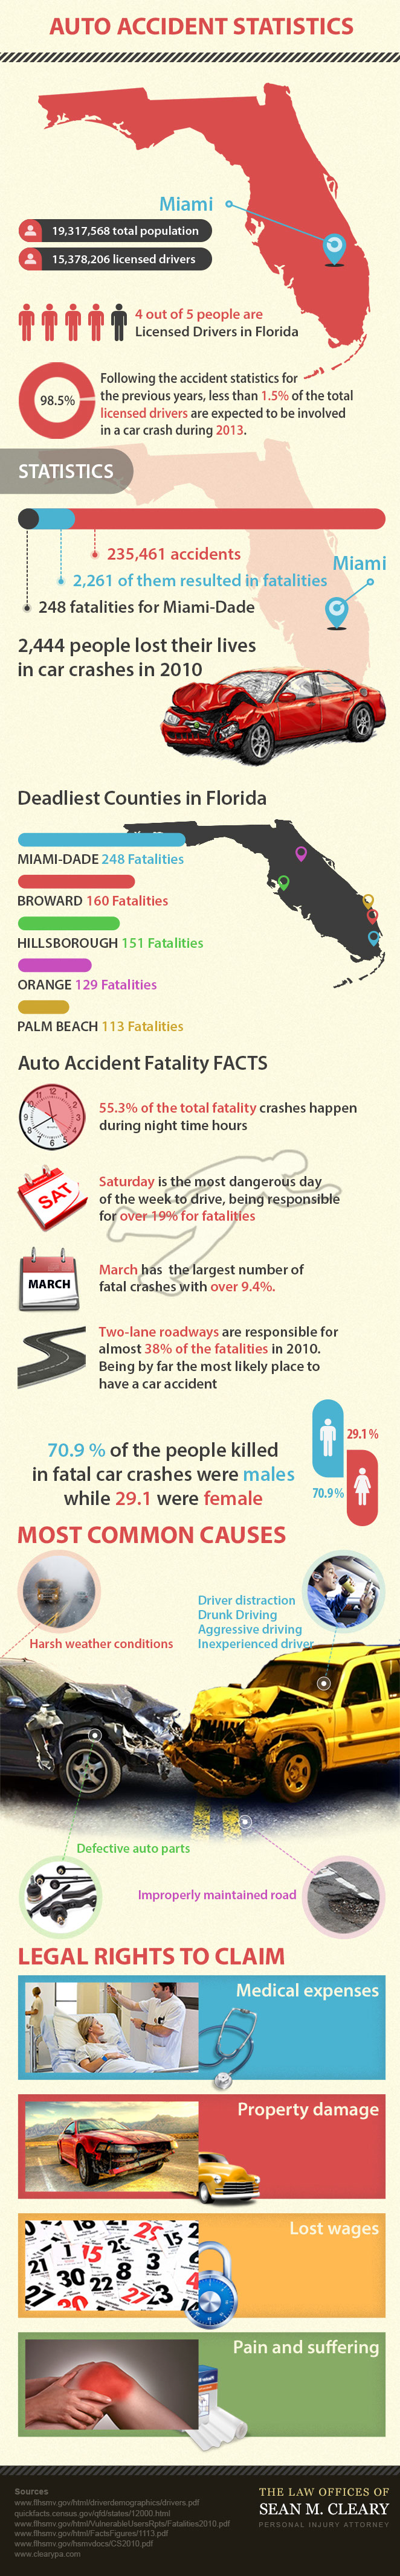 Florida Car Accidents Report-Infographic